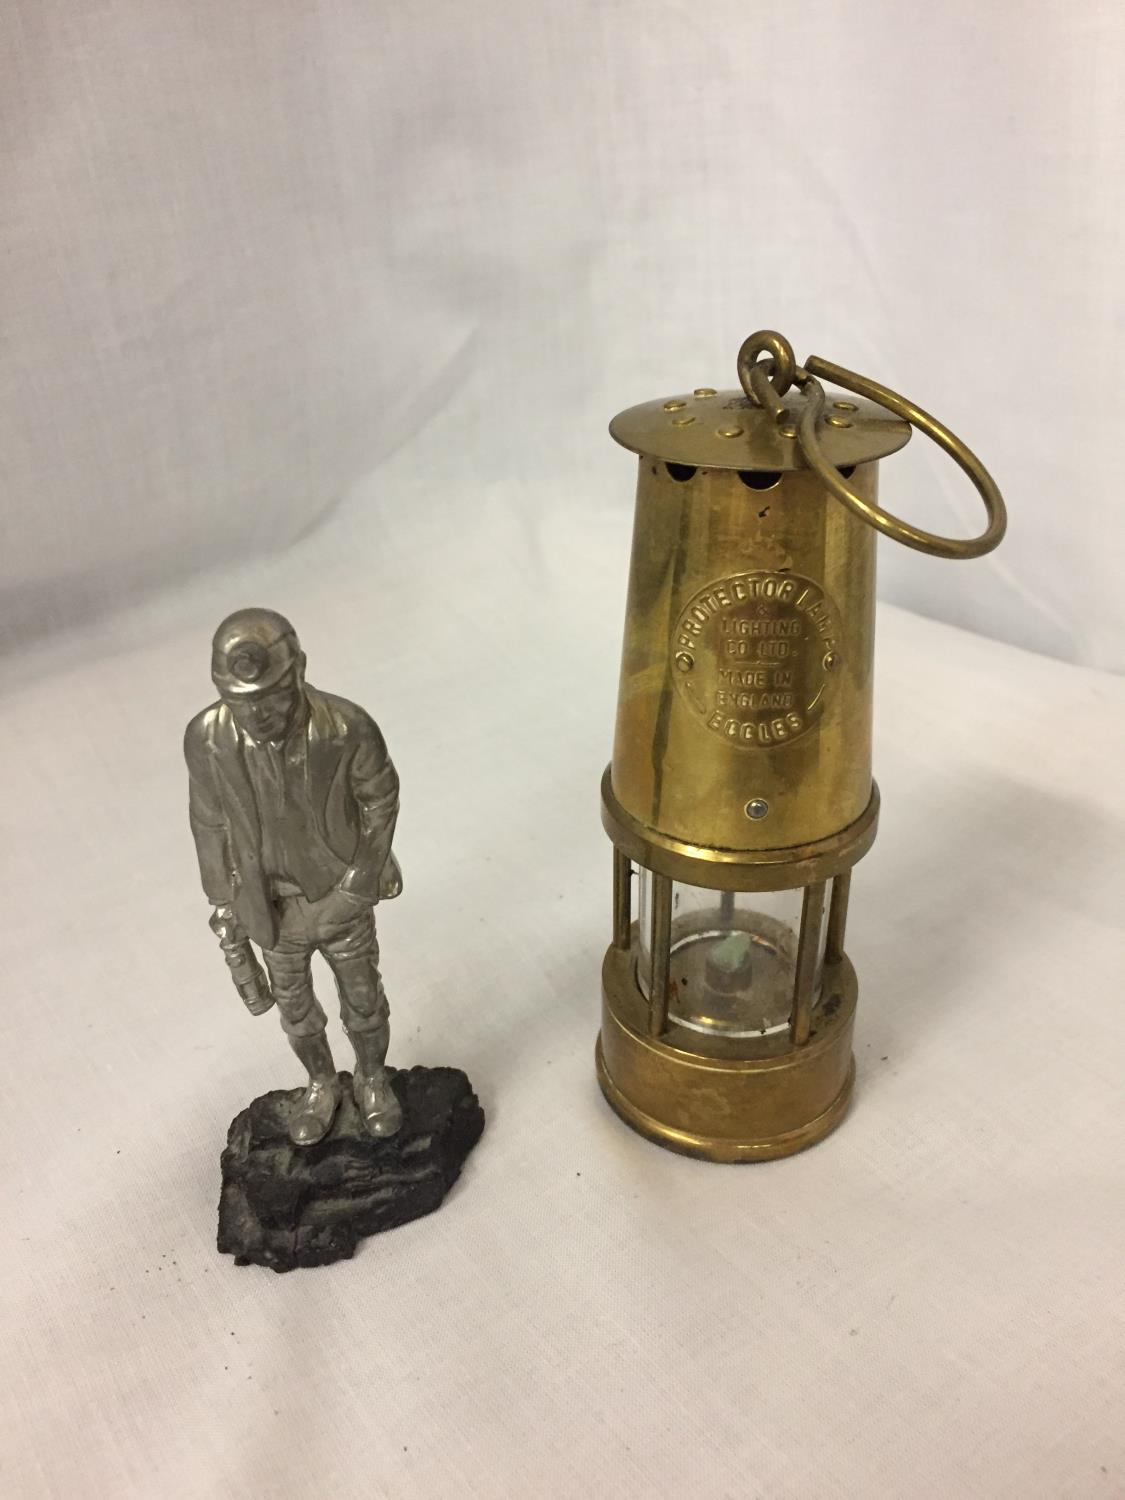 A BRASS MINATURE MINERS PROTECTION LAMP ECCLES AND A FIGURE OF A MINER